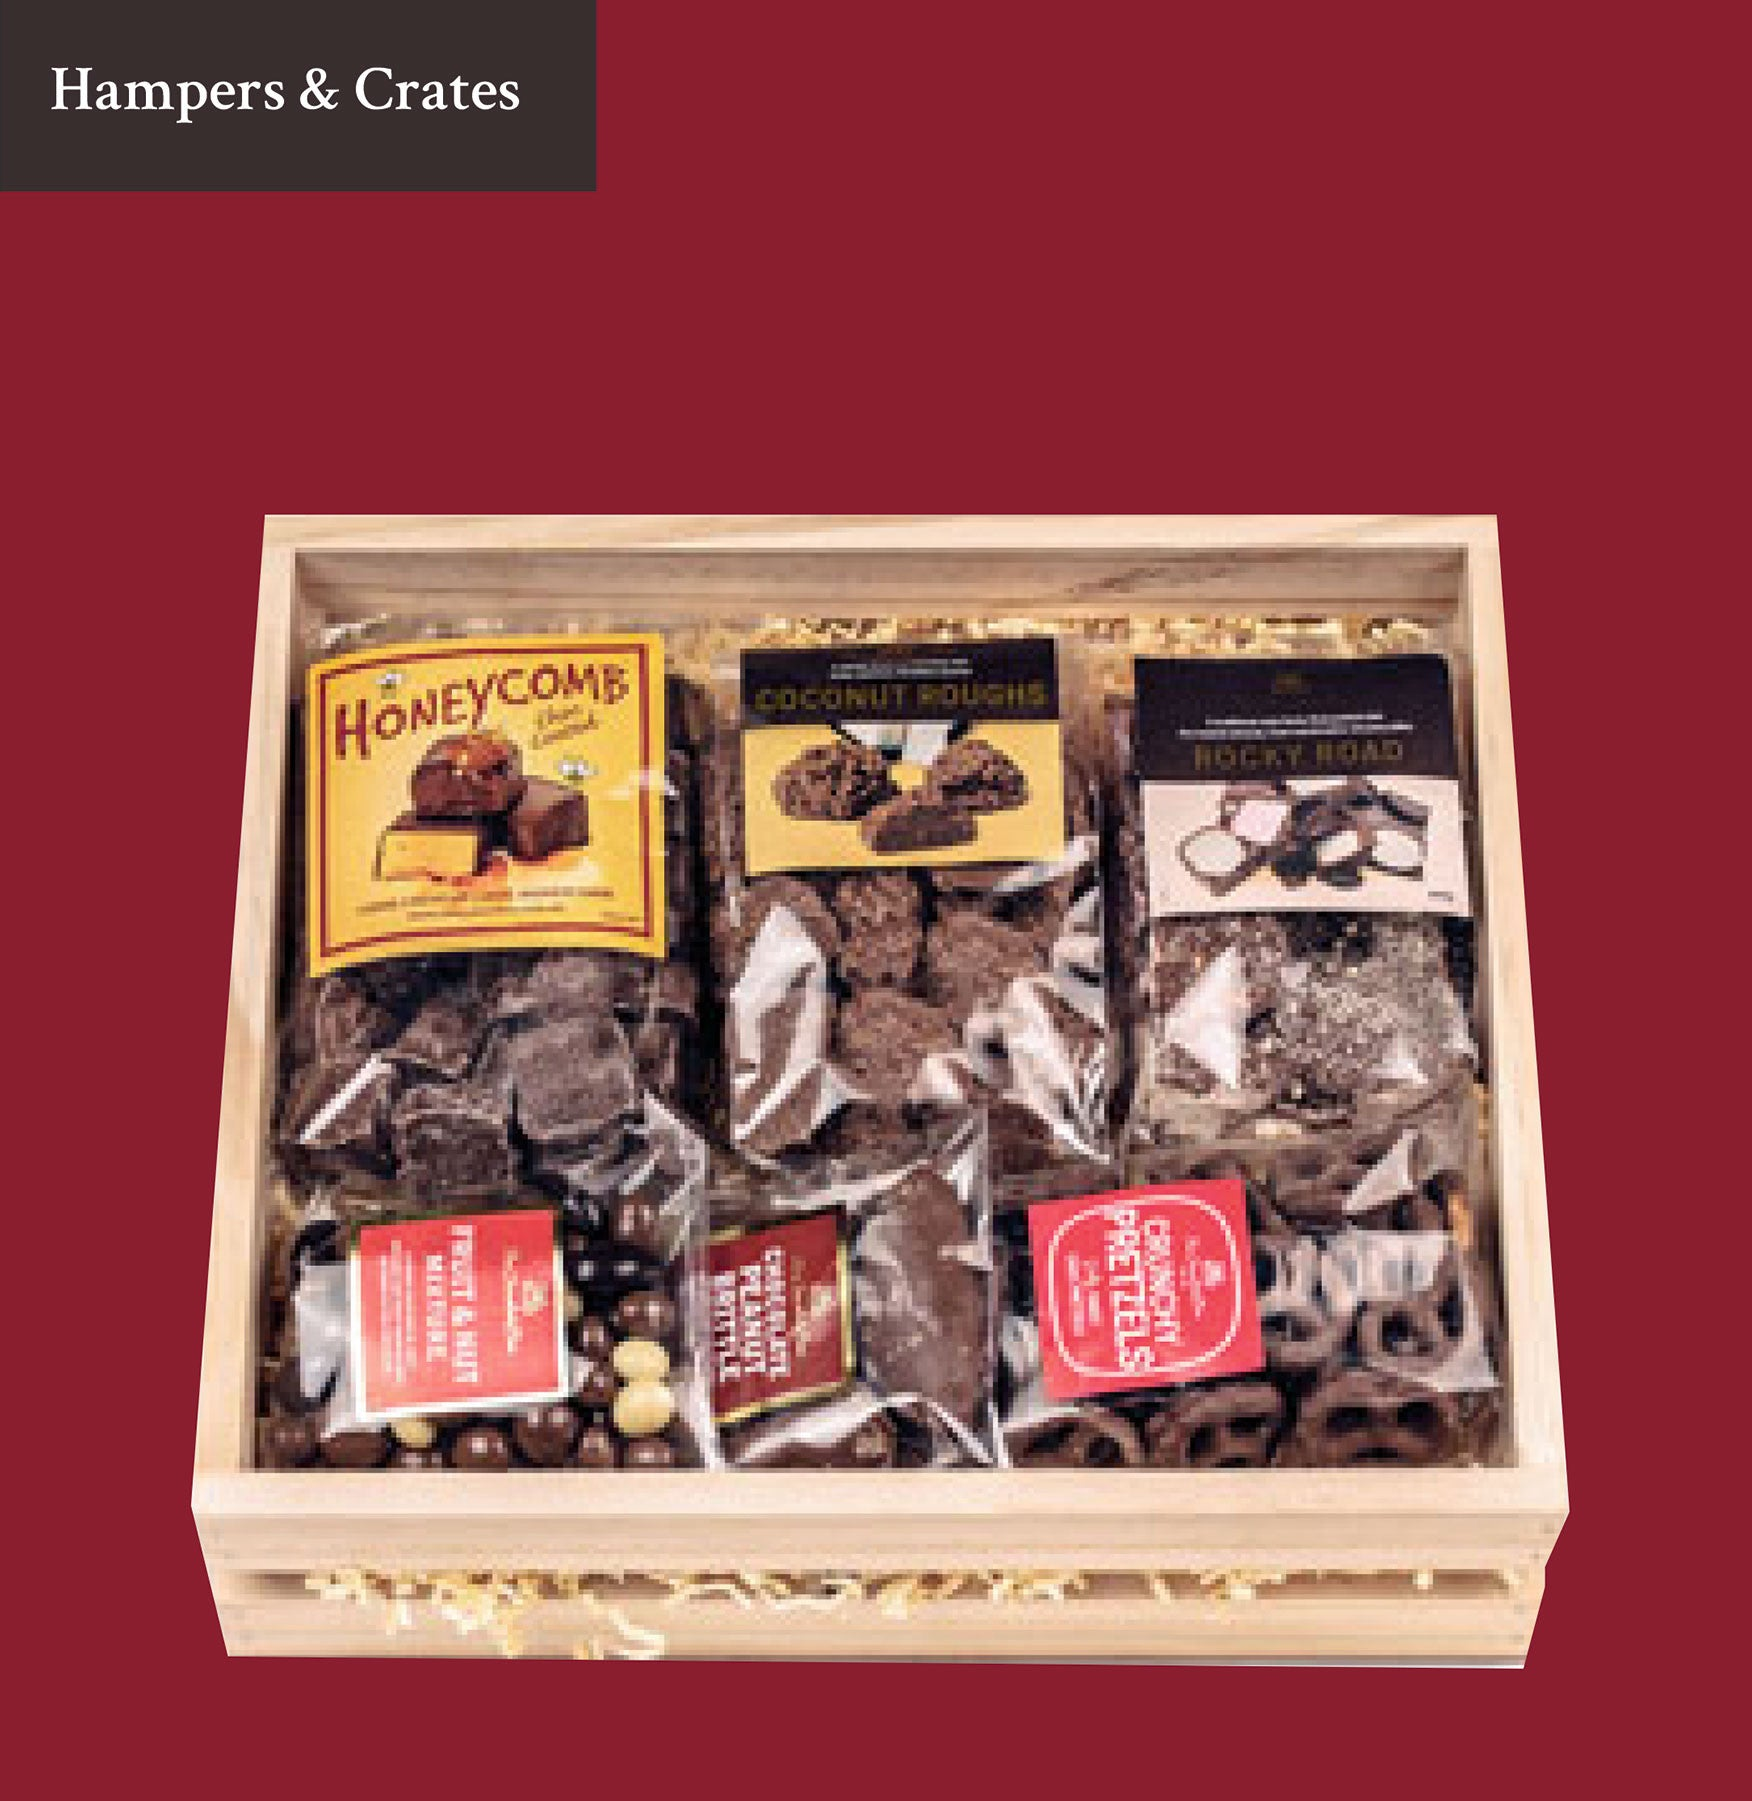 Hampers and Crates